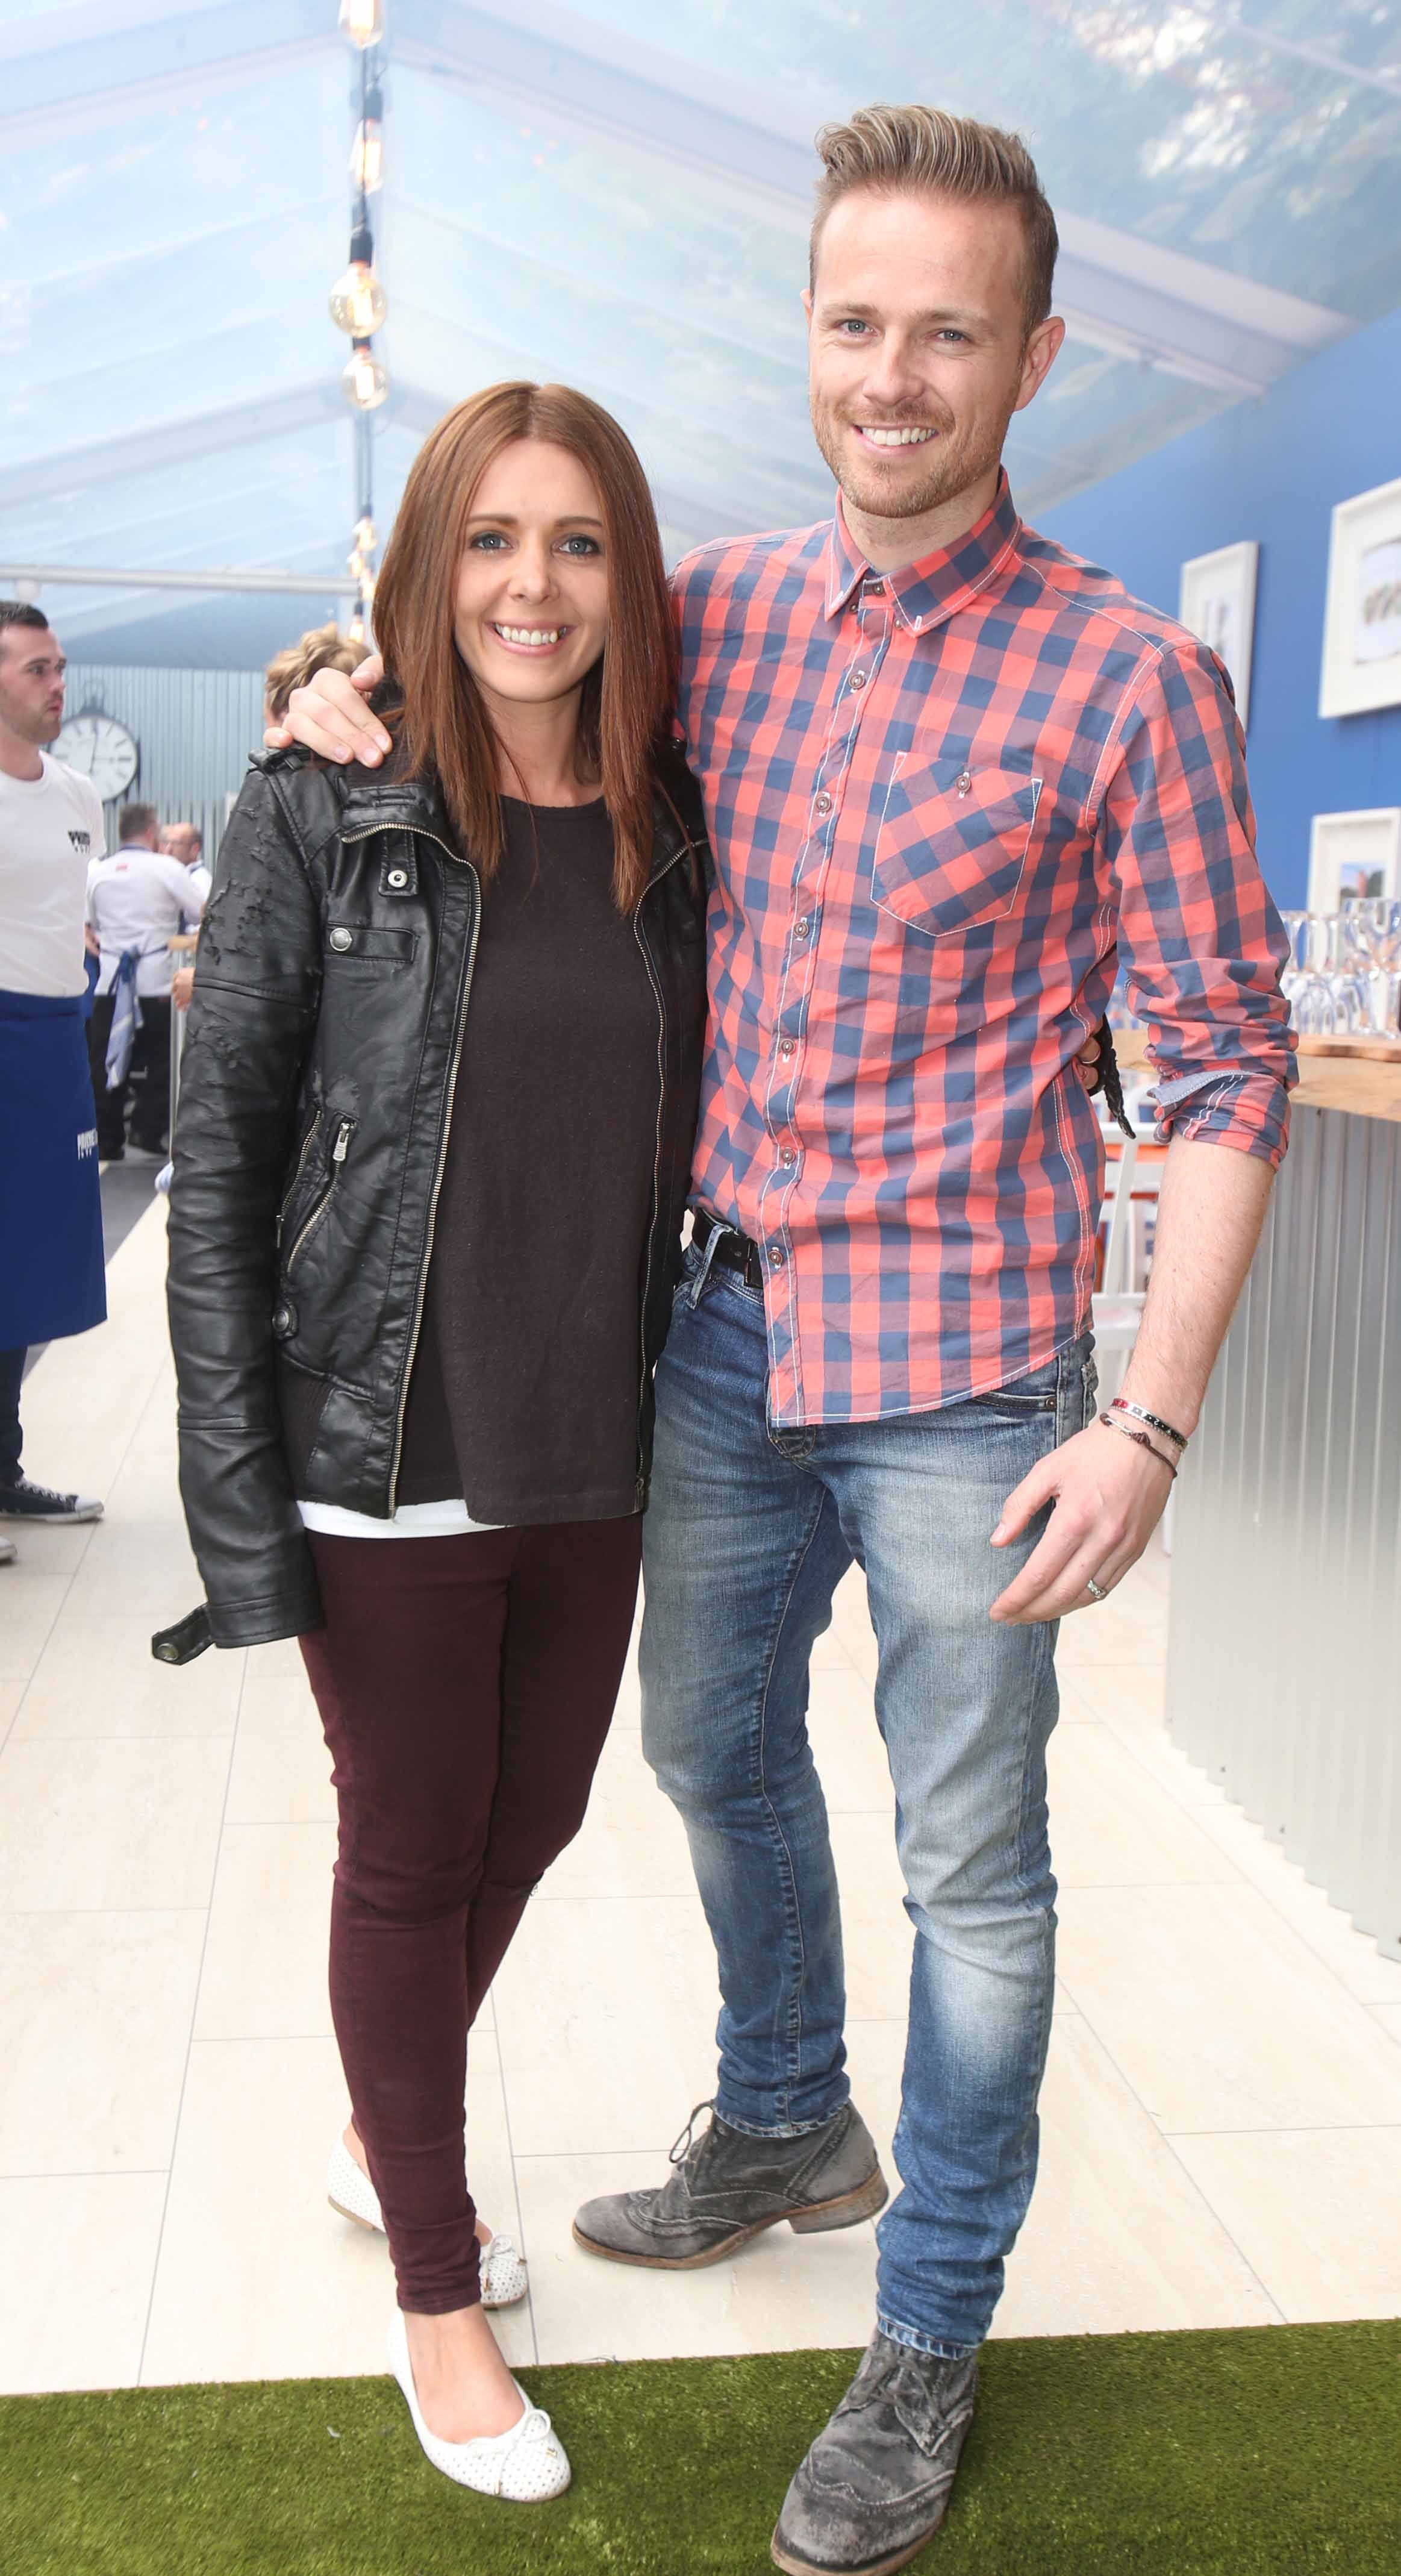 Jenny Greene and Nicky Bryne